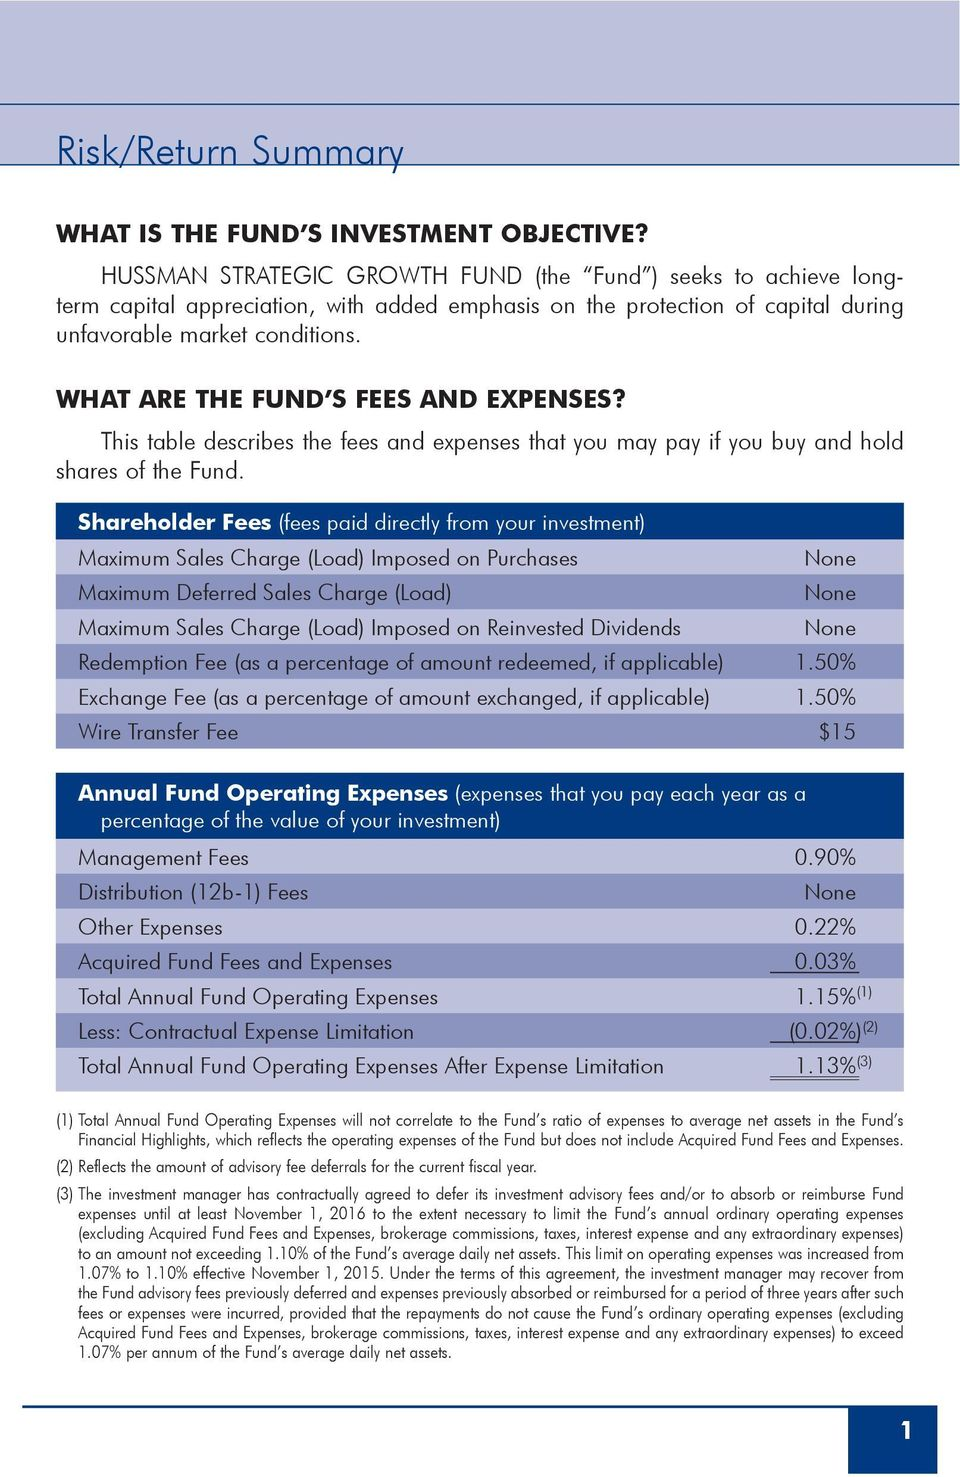 WHAT ARE THE FUND S FEES AND EXPENSES? This table describes the fees and expenses that you may pay if you buy and hold shares of the Fund.